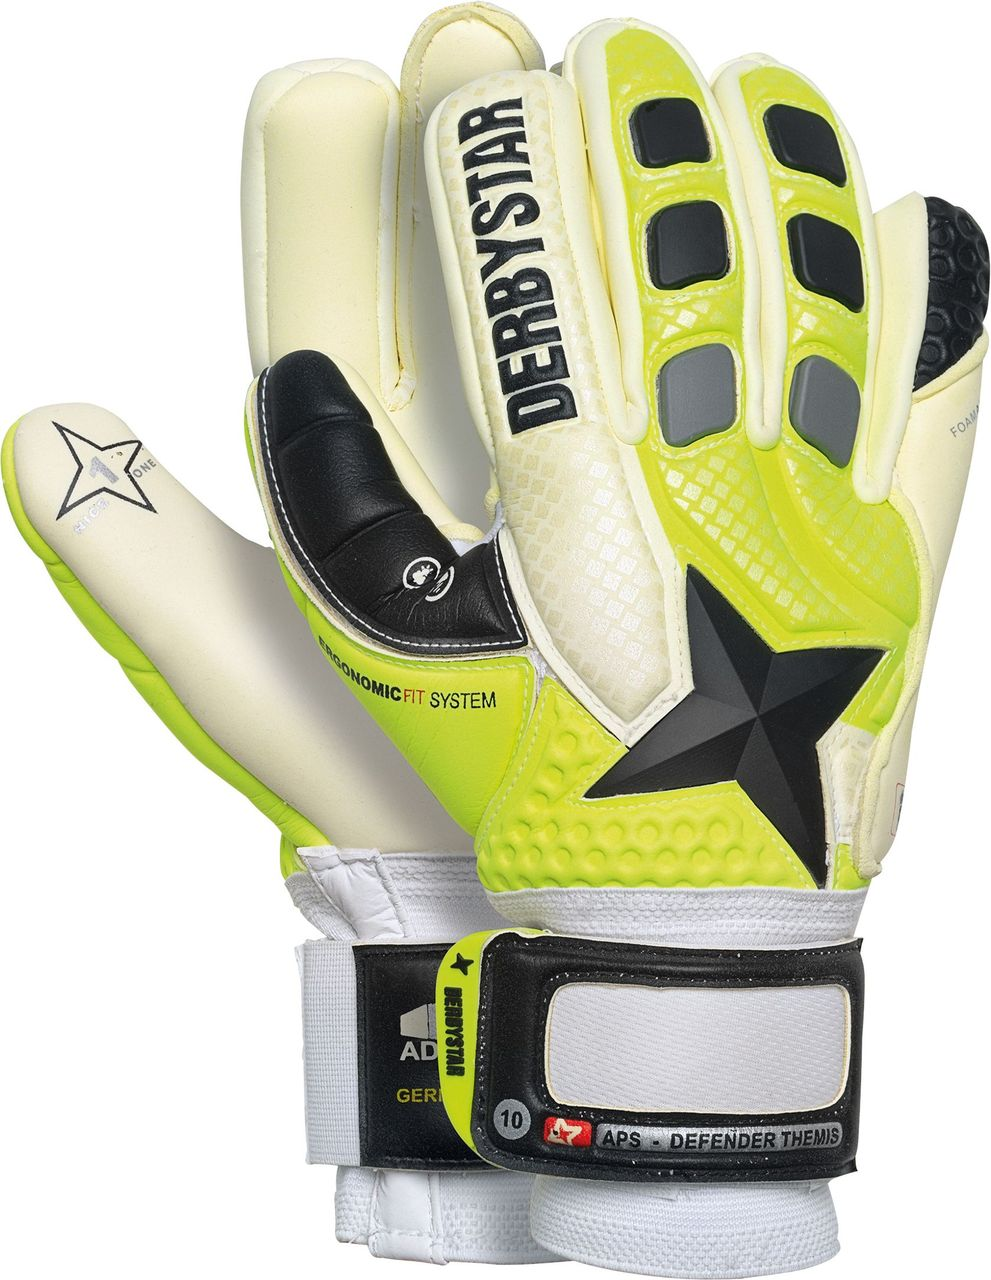 DERBYSTAR APS DEFENDER Themis - Goalkeeper glove